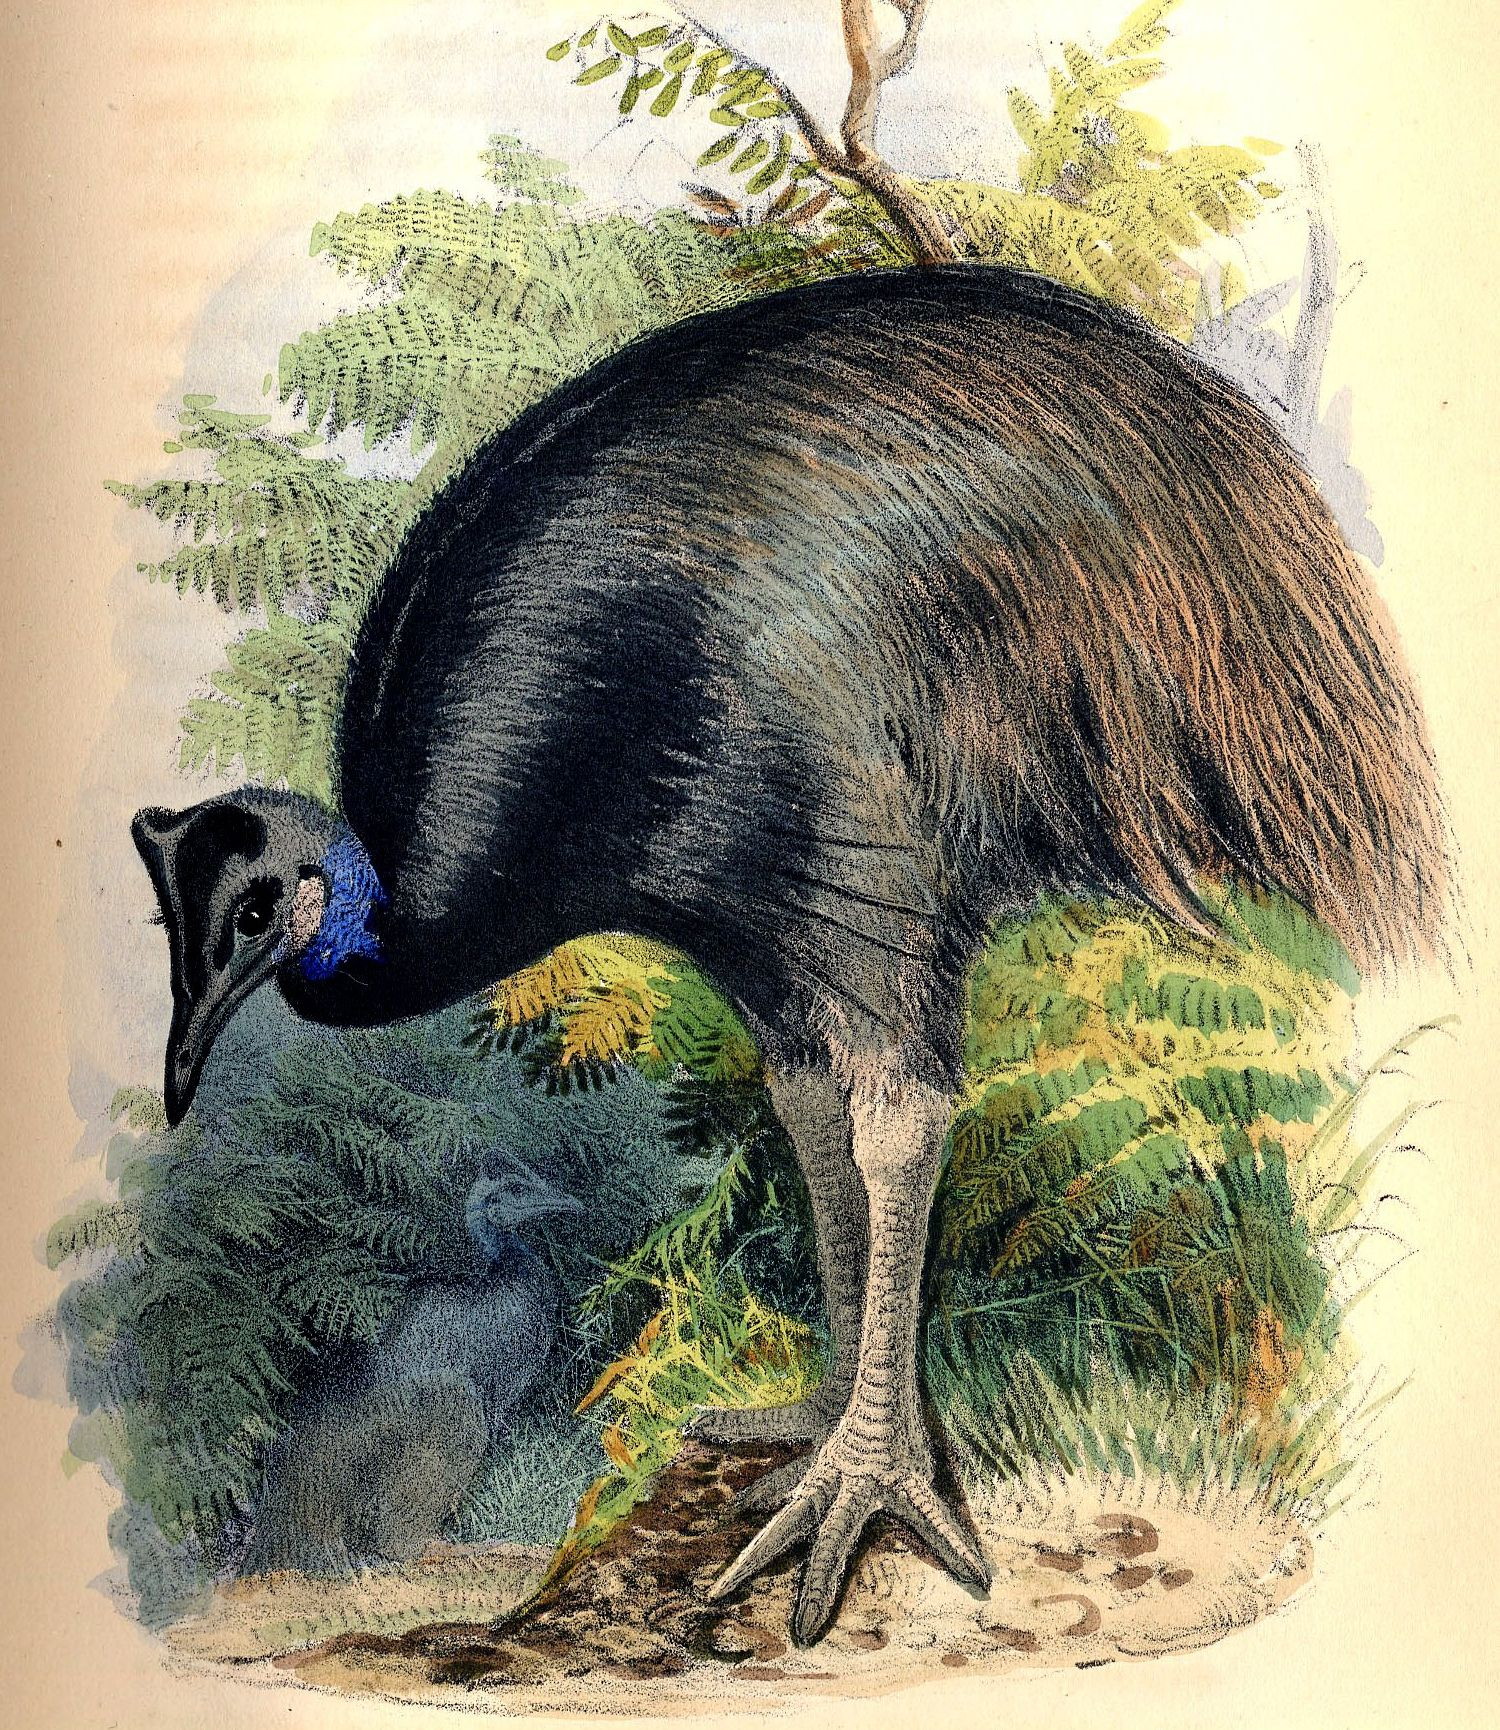 Dwarf Cassowary wallpaper